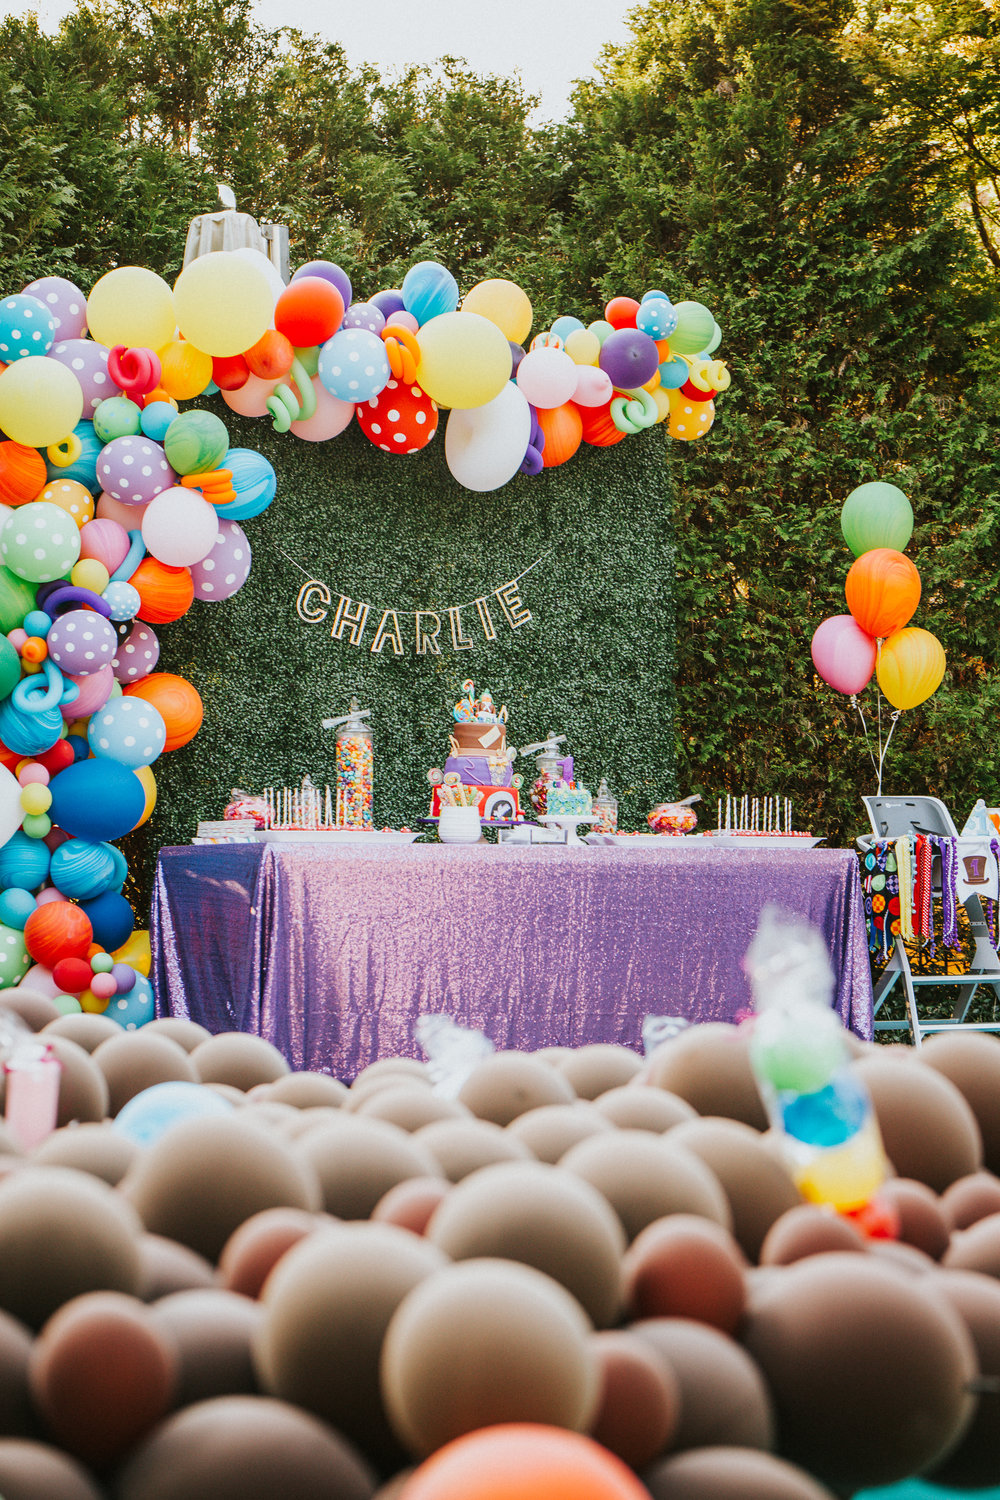 Willy Wonka Themed Birthday Party - Scarlet Plan & Design Atlanta Party Event Planners & Designers (117).jpg